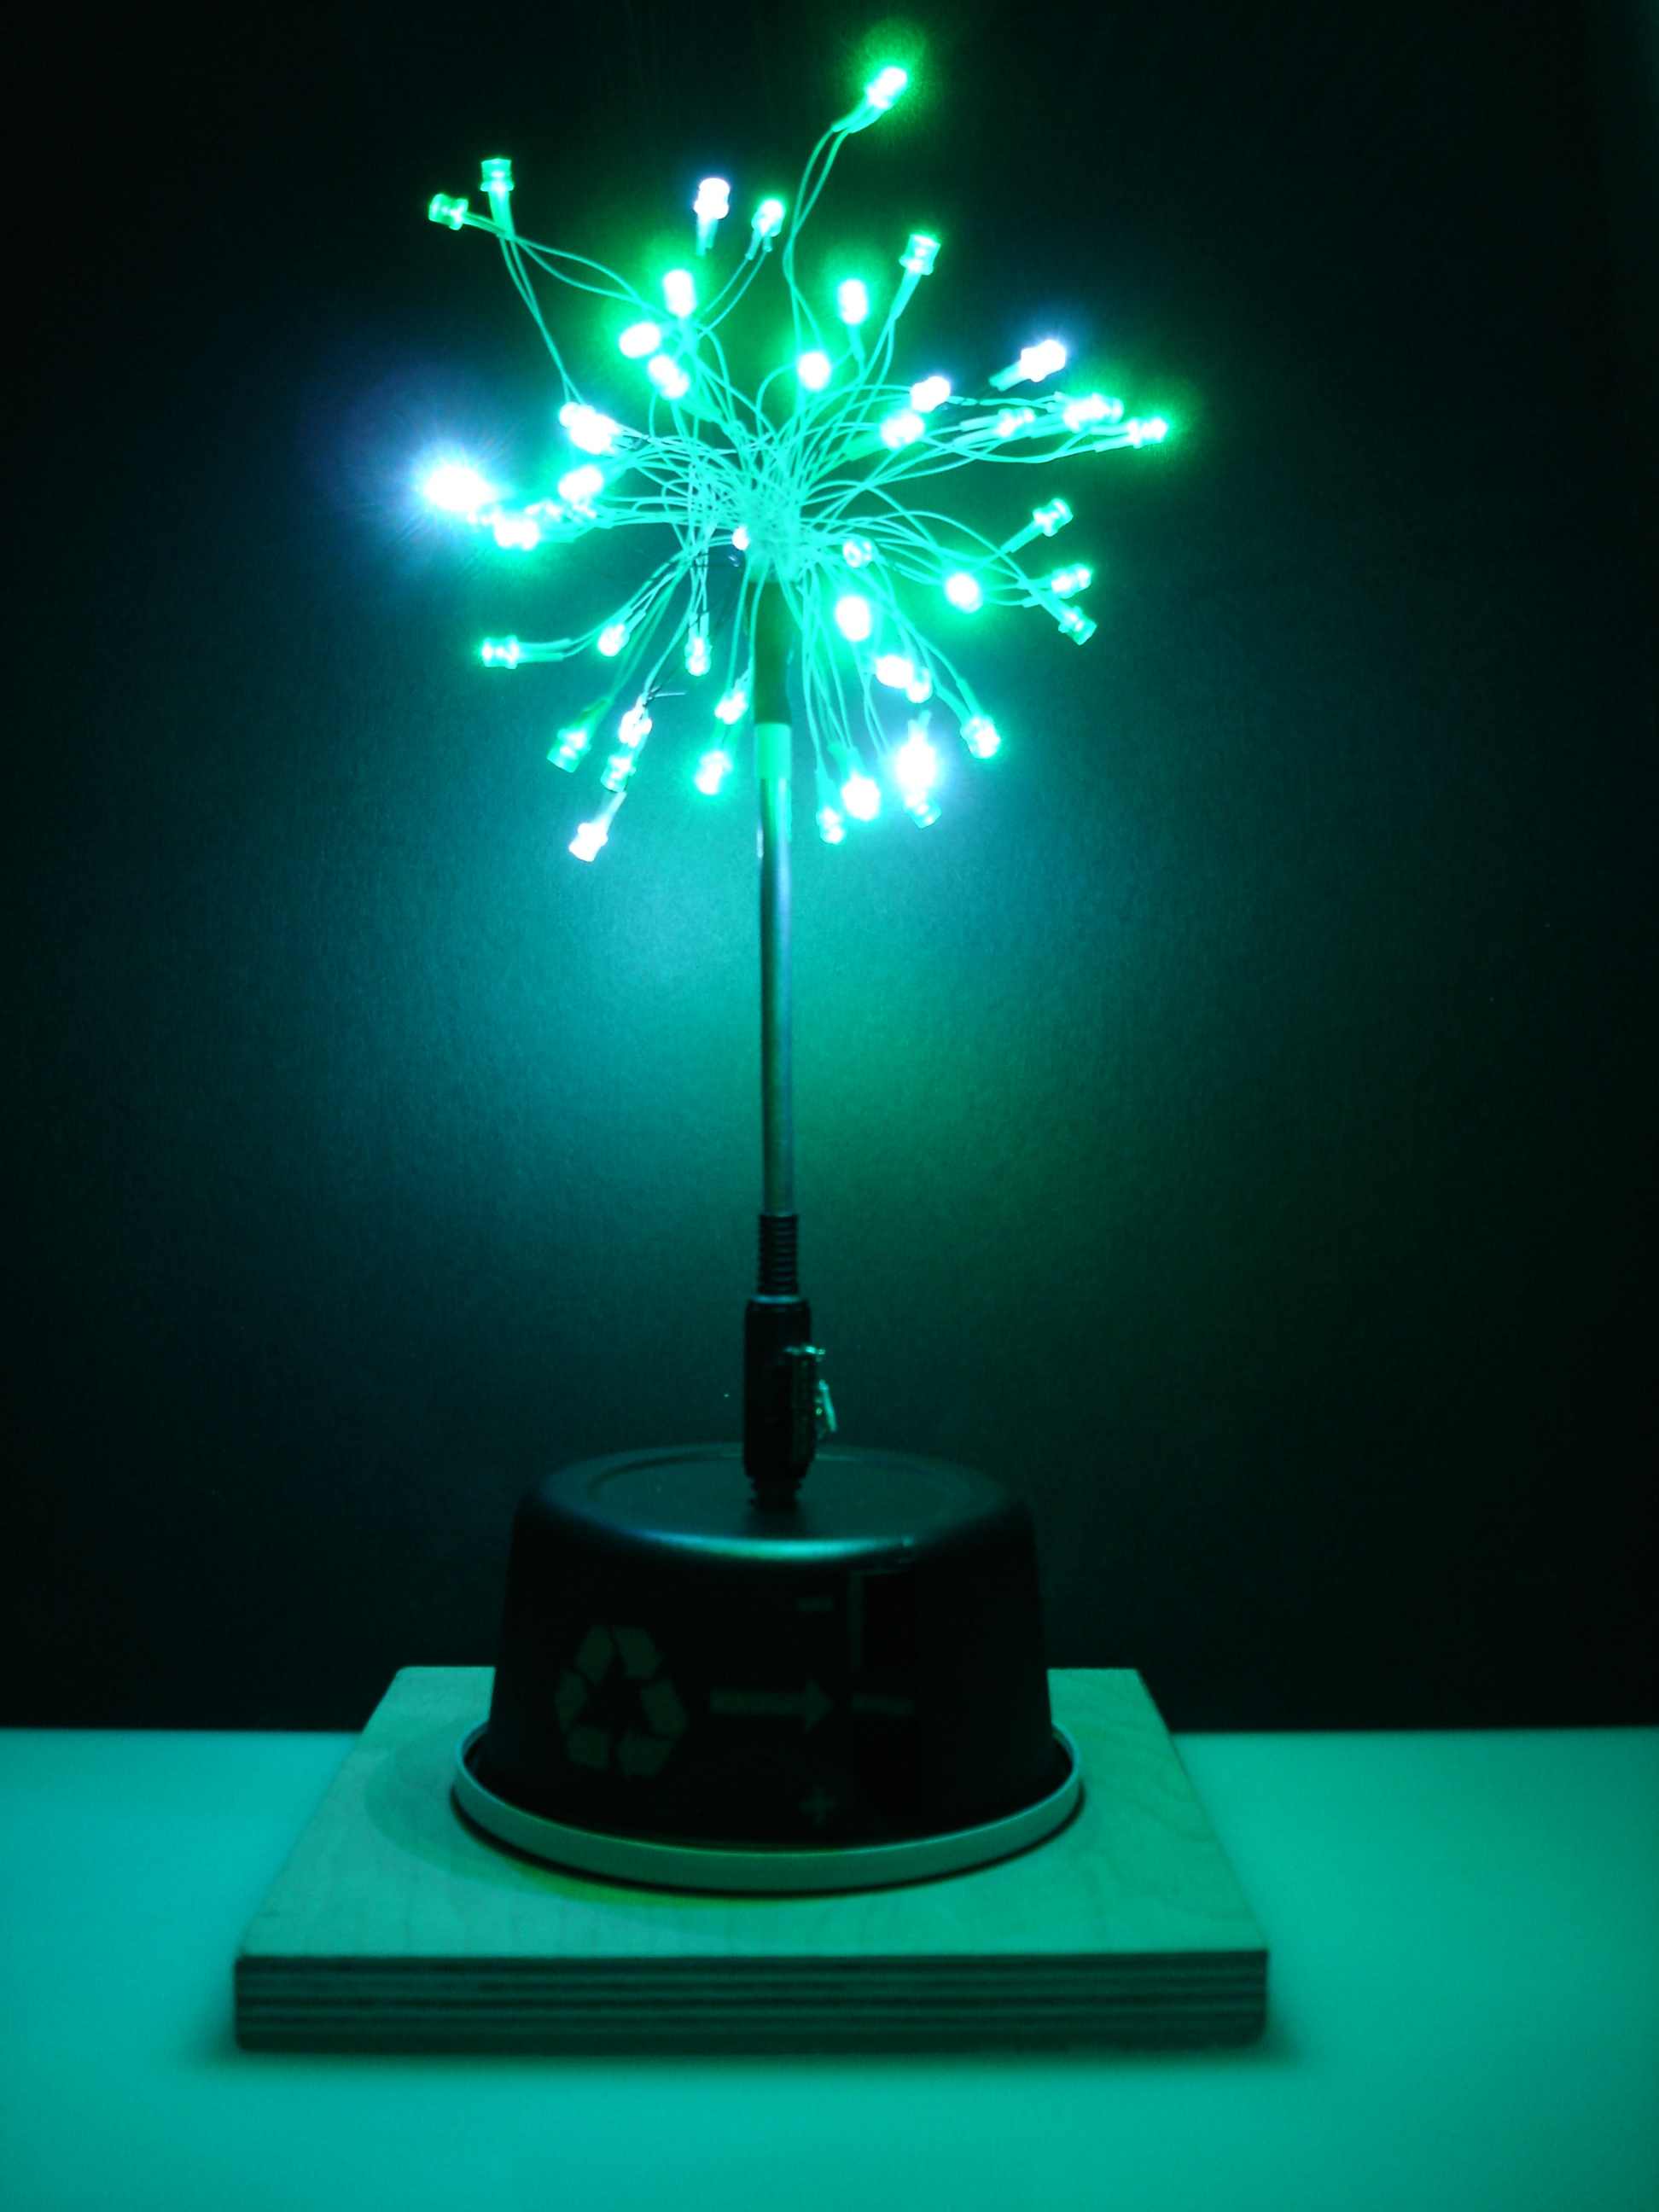 Desktop energy seed lamp